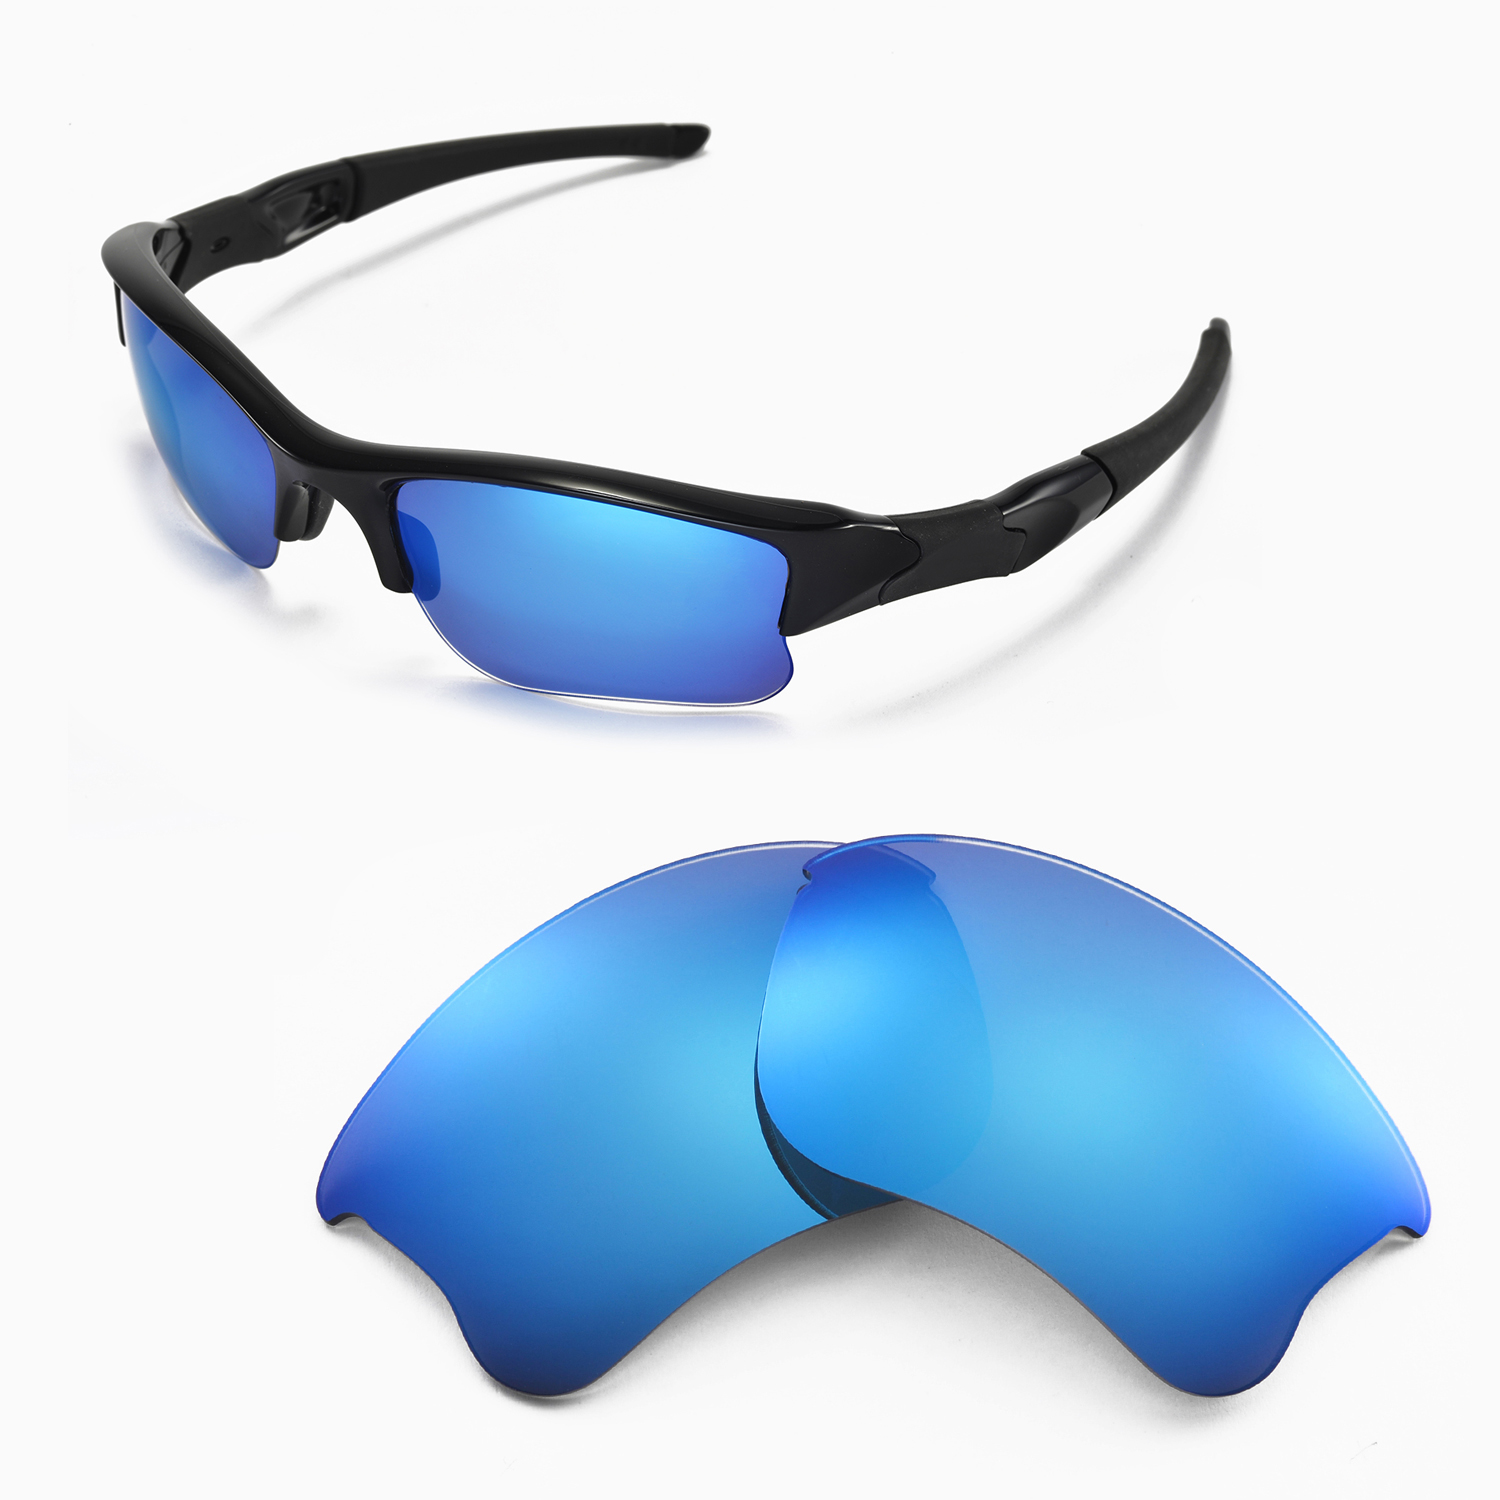 New Walleva Ice Blue Replacement Lenses For Oakley Flak